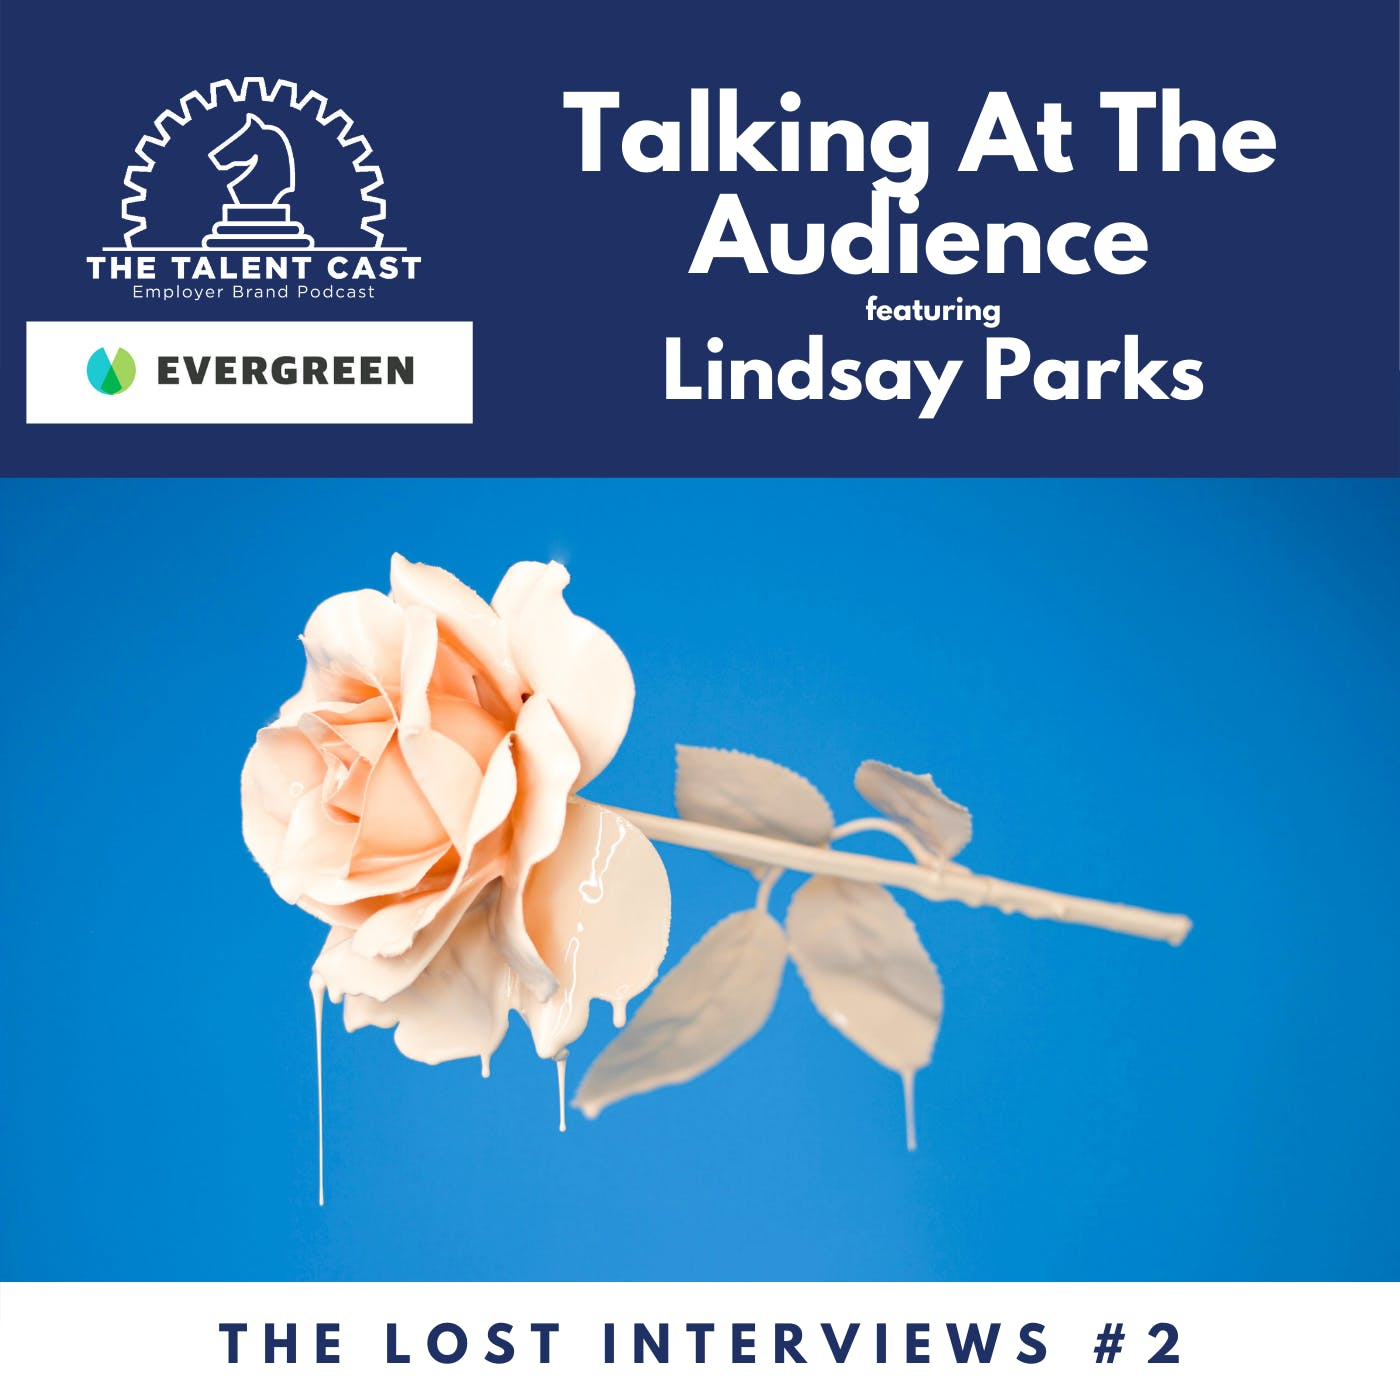 Talking At The Audience: The Lost Interviews #2 - Lindsay Parks